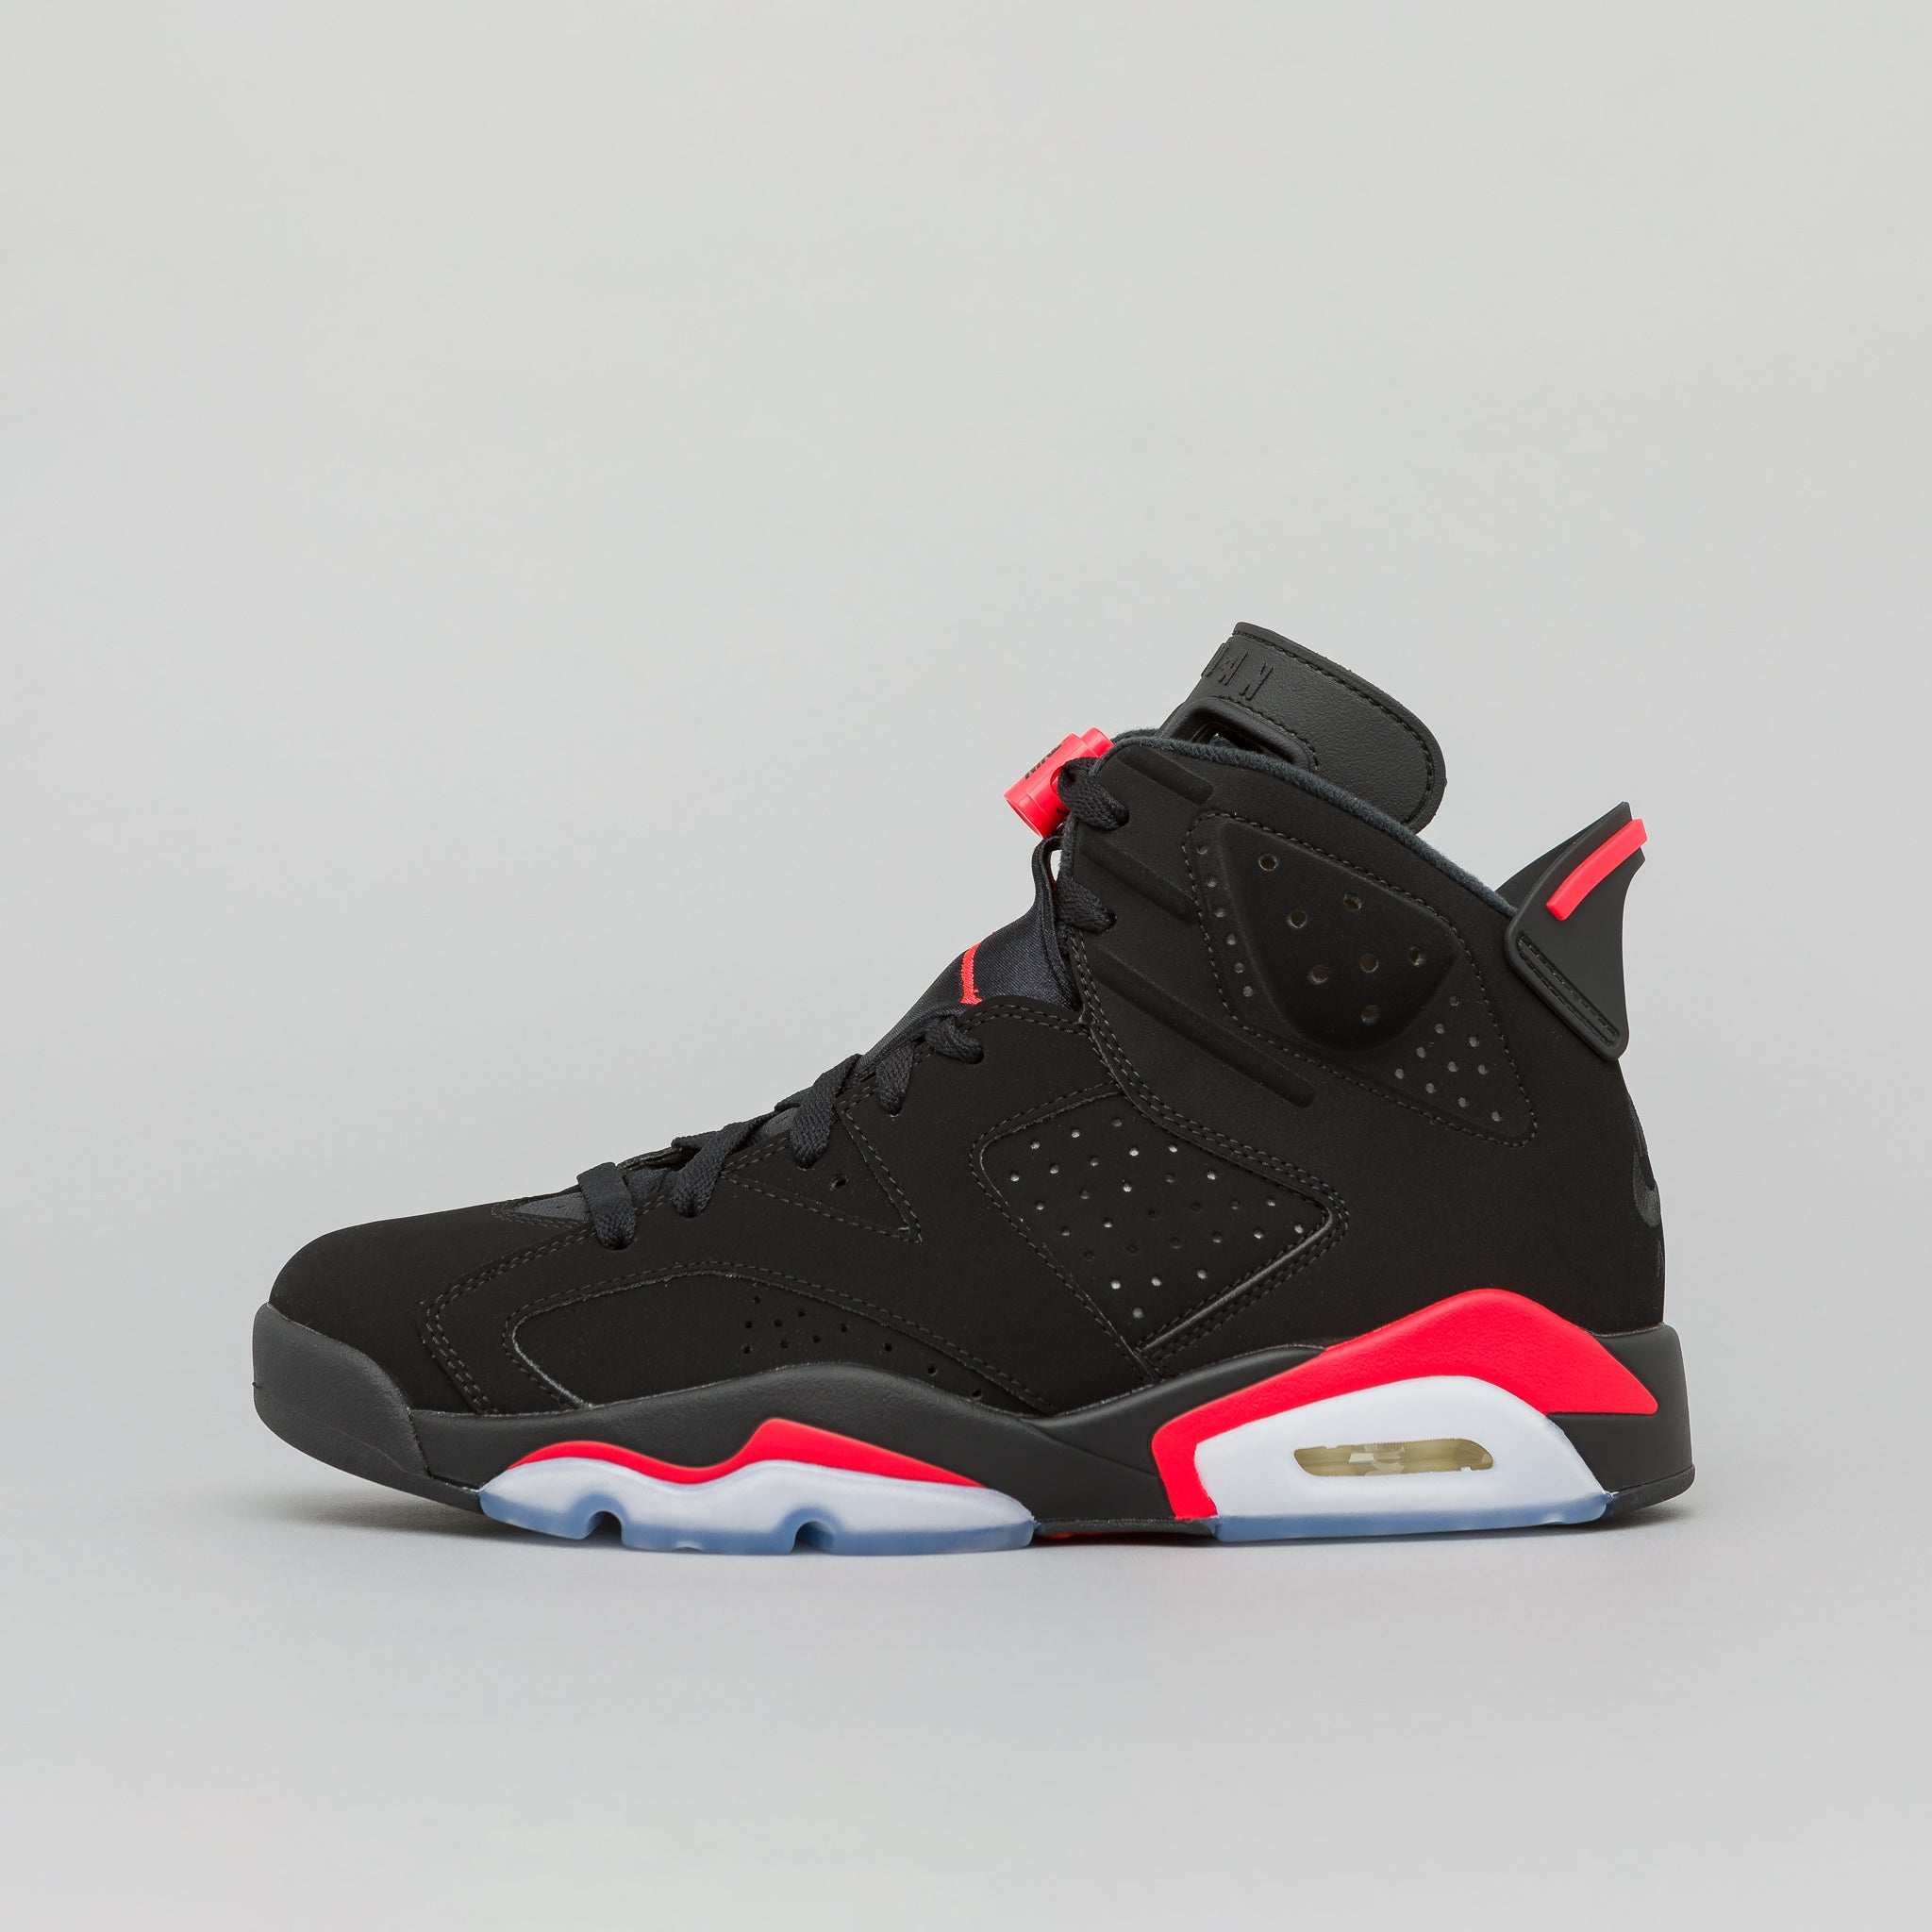 fe86b663be4d Air Jordan 6 Black Infrared T Shirt